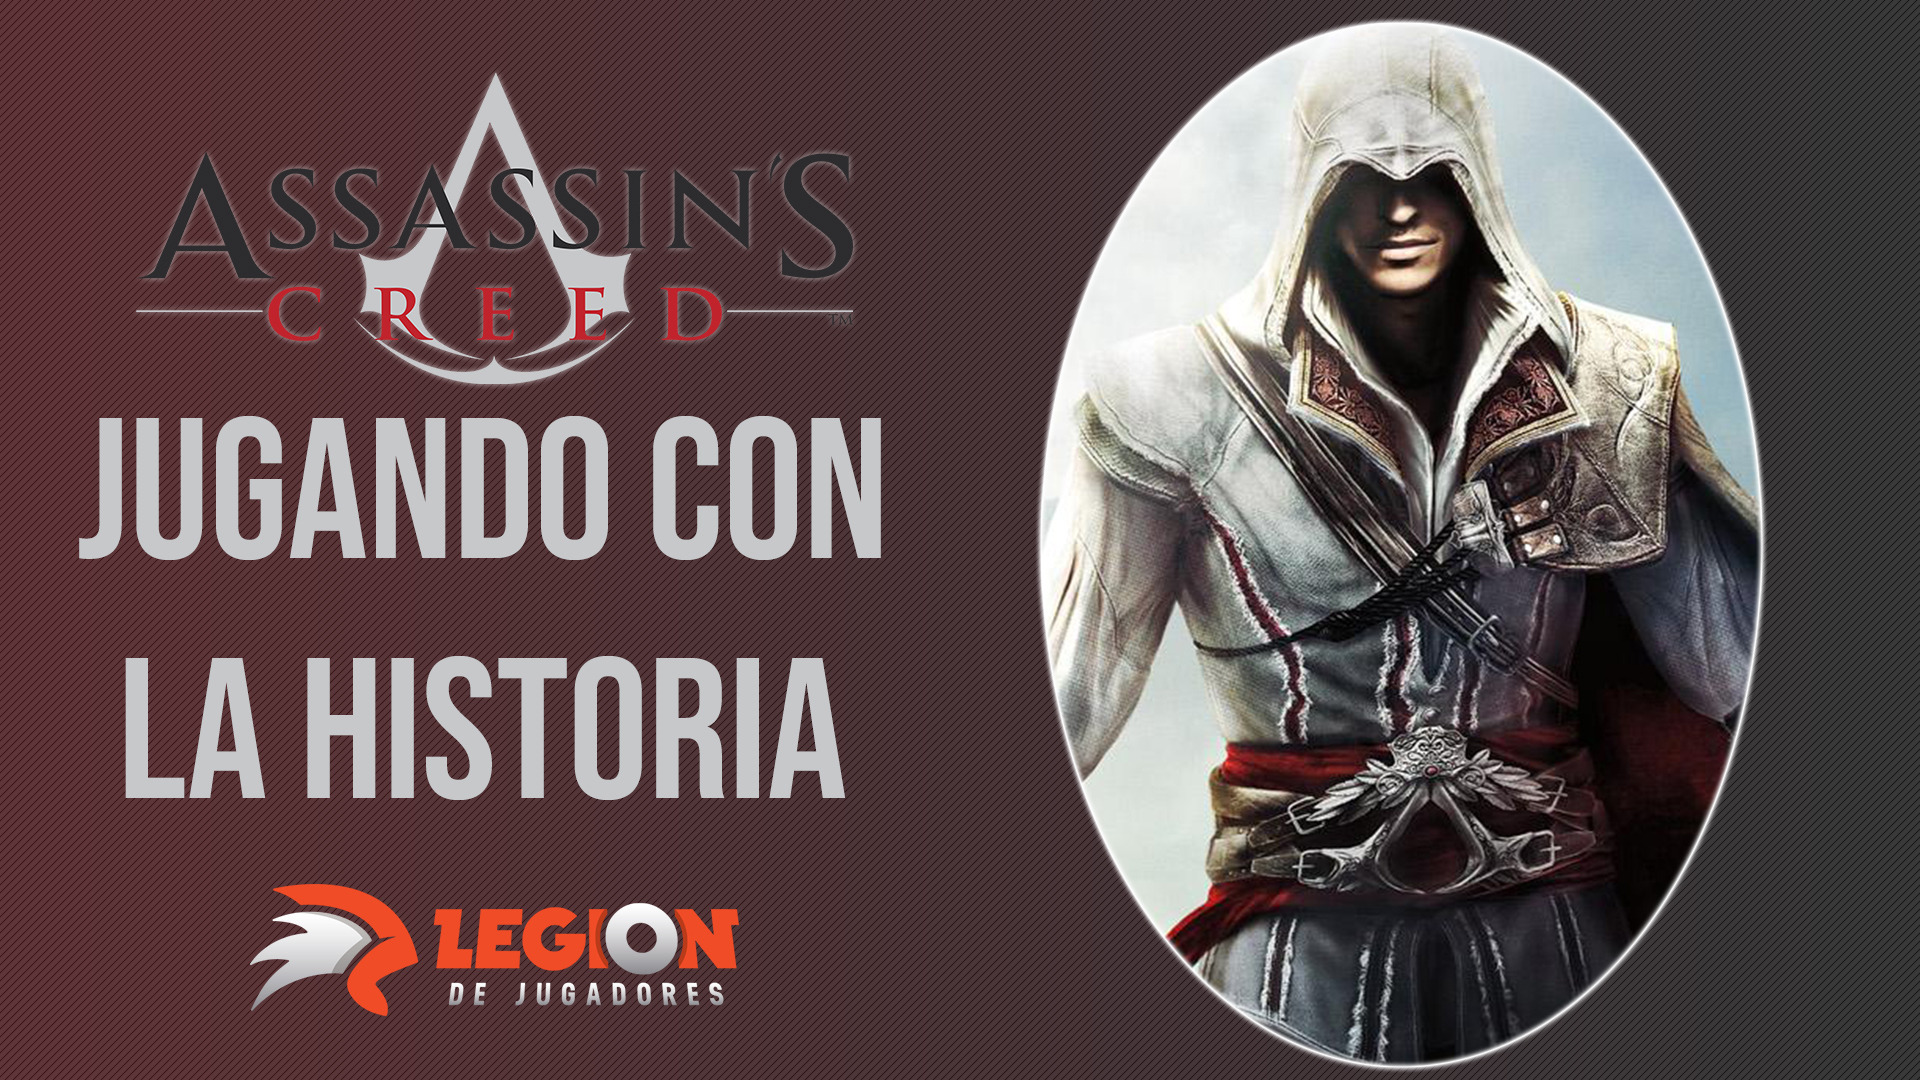 Assassin's Creed, jugando con la historia parte I